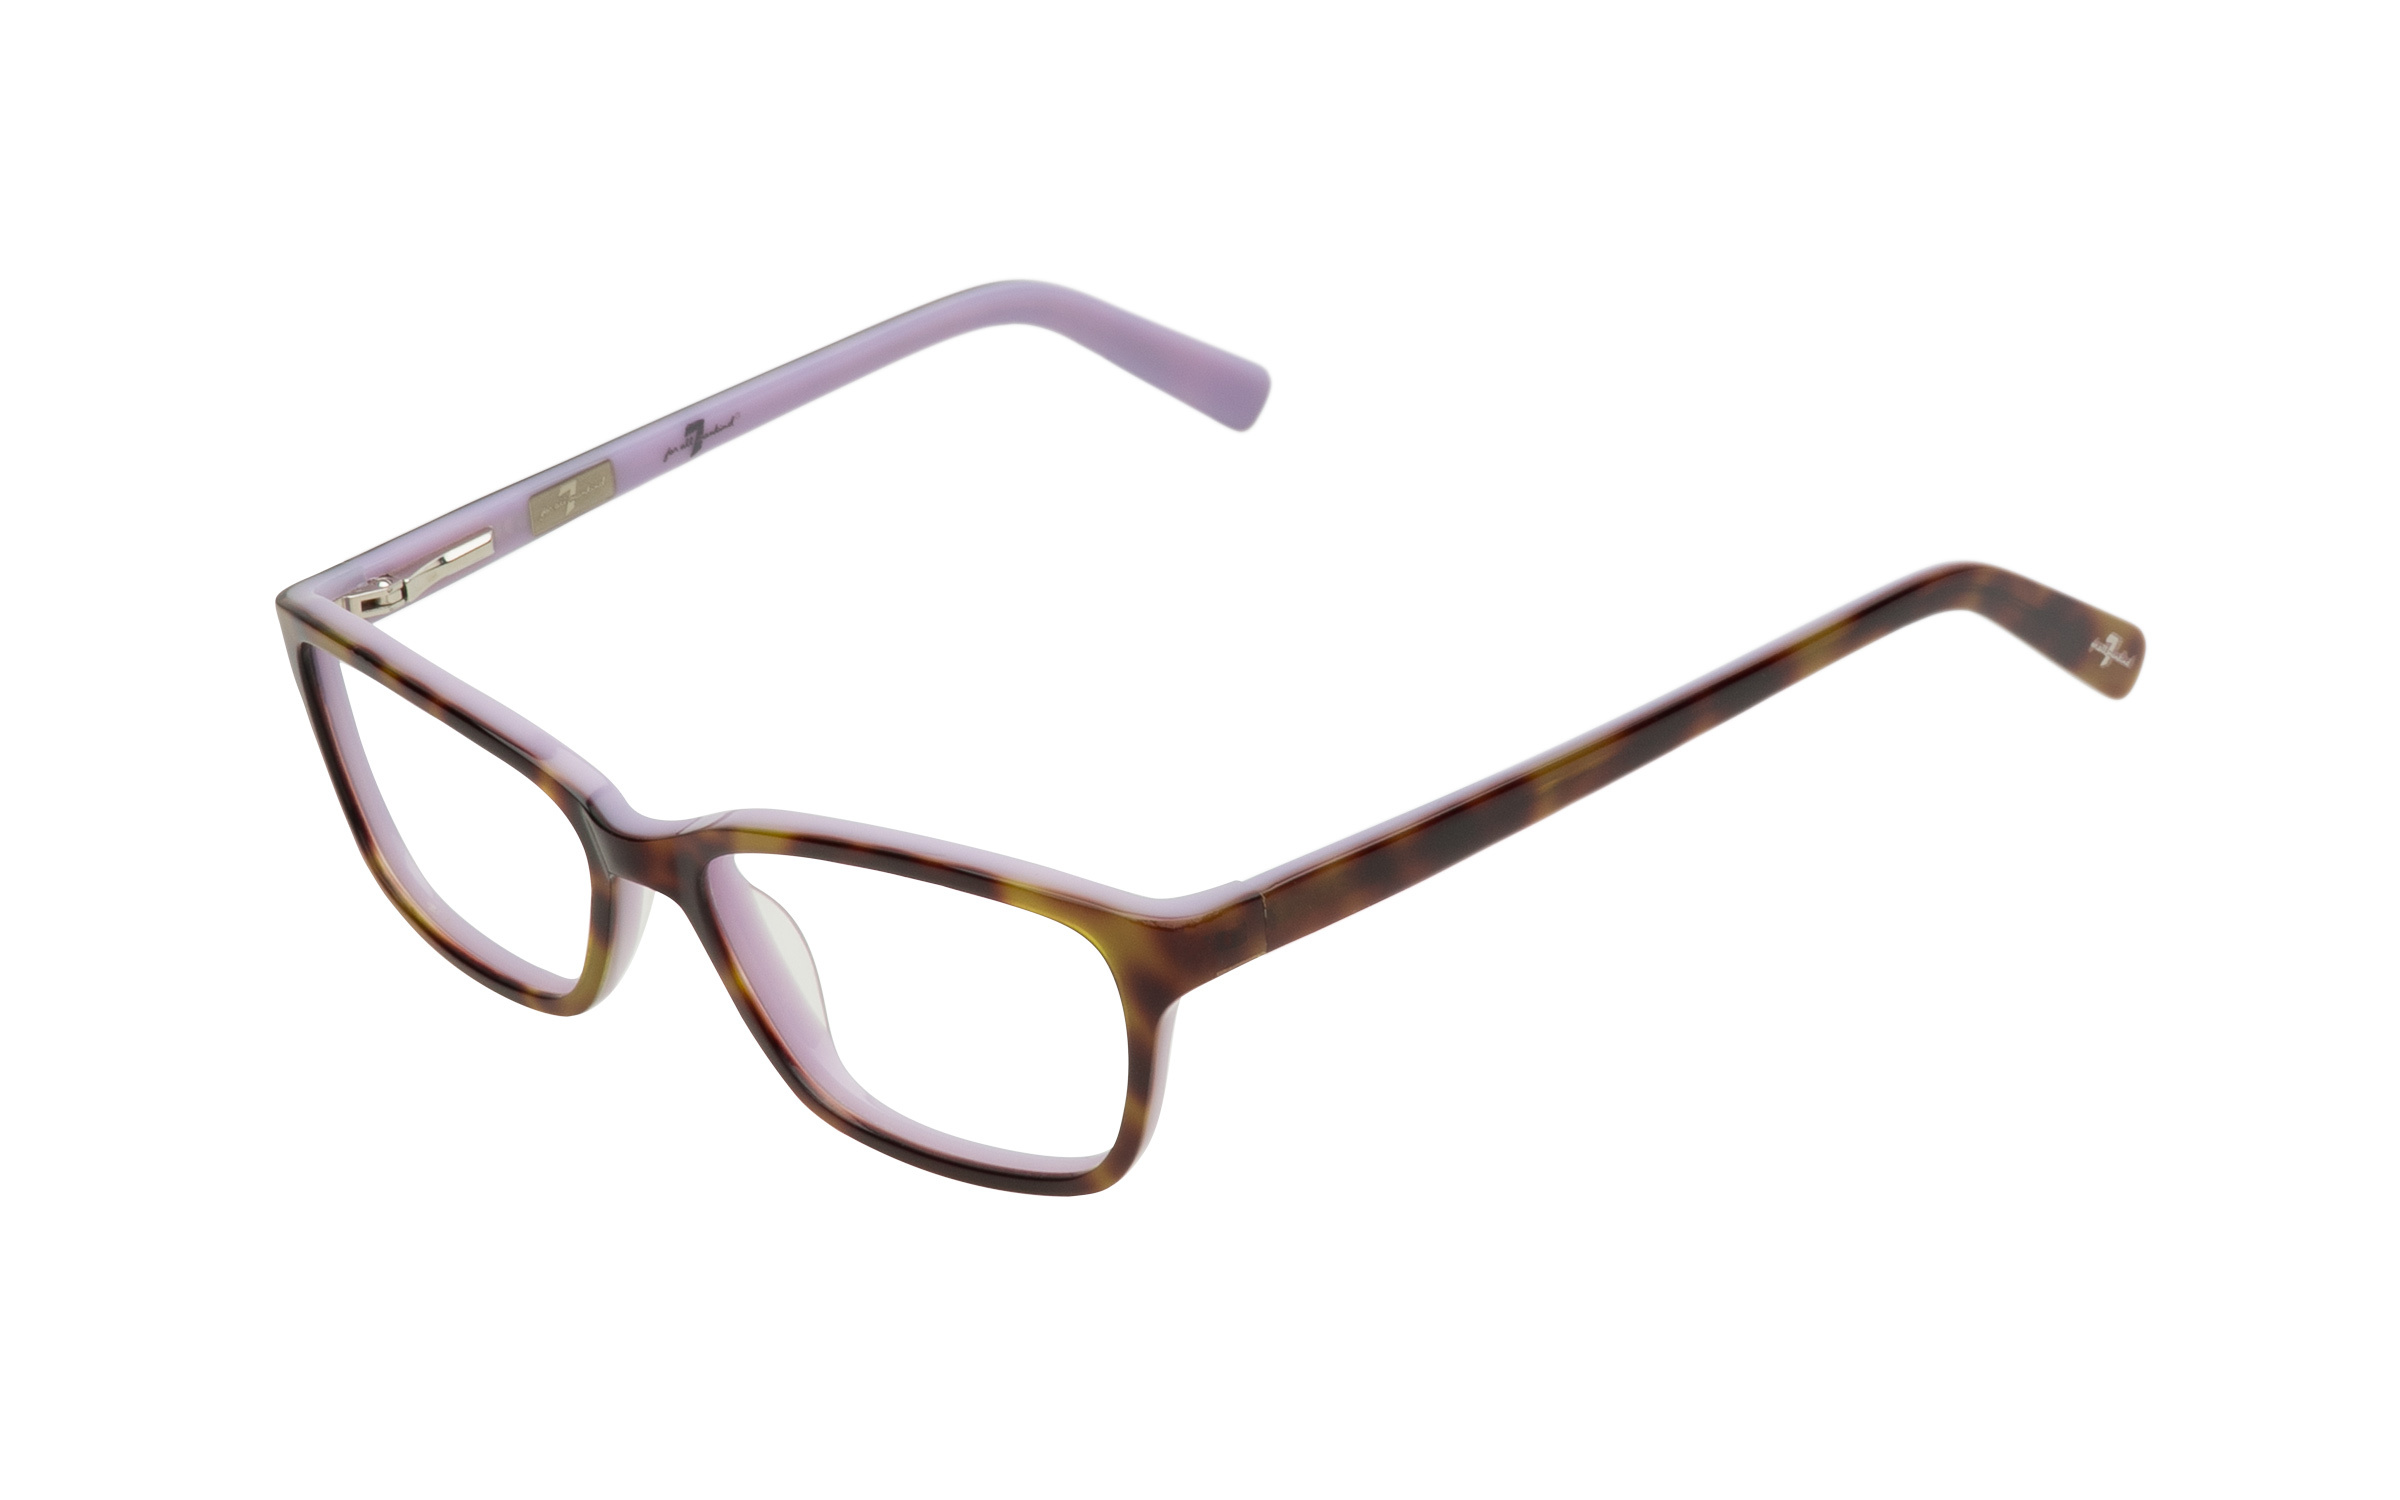 7 for All Mankind Glasses Round Purple Acetate Online Clearly